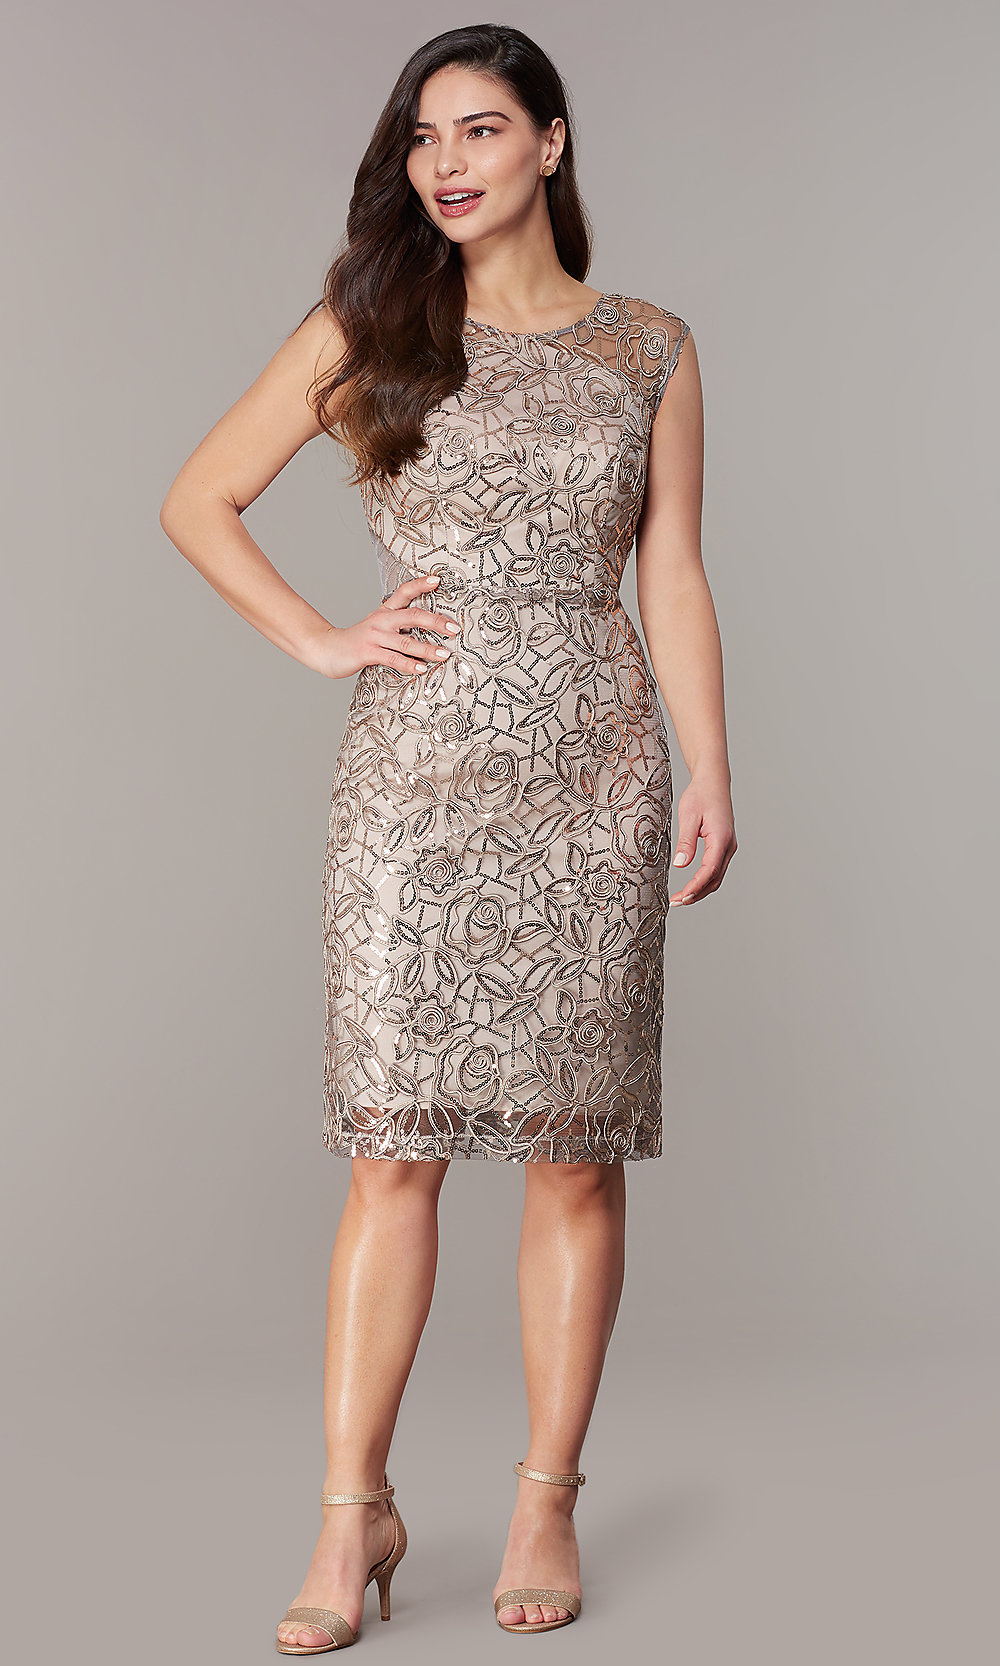 Sparkly Wedding Guest Dresses